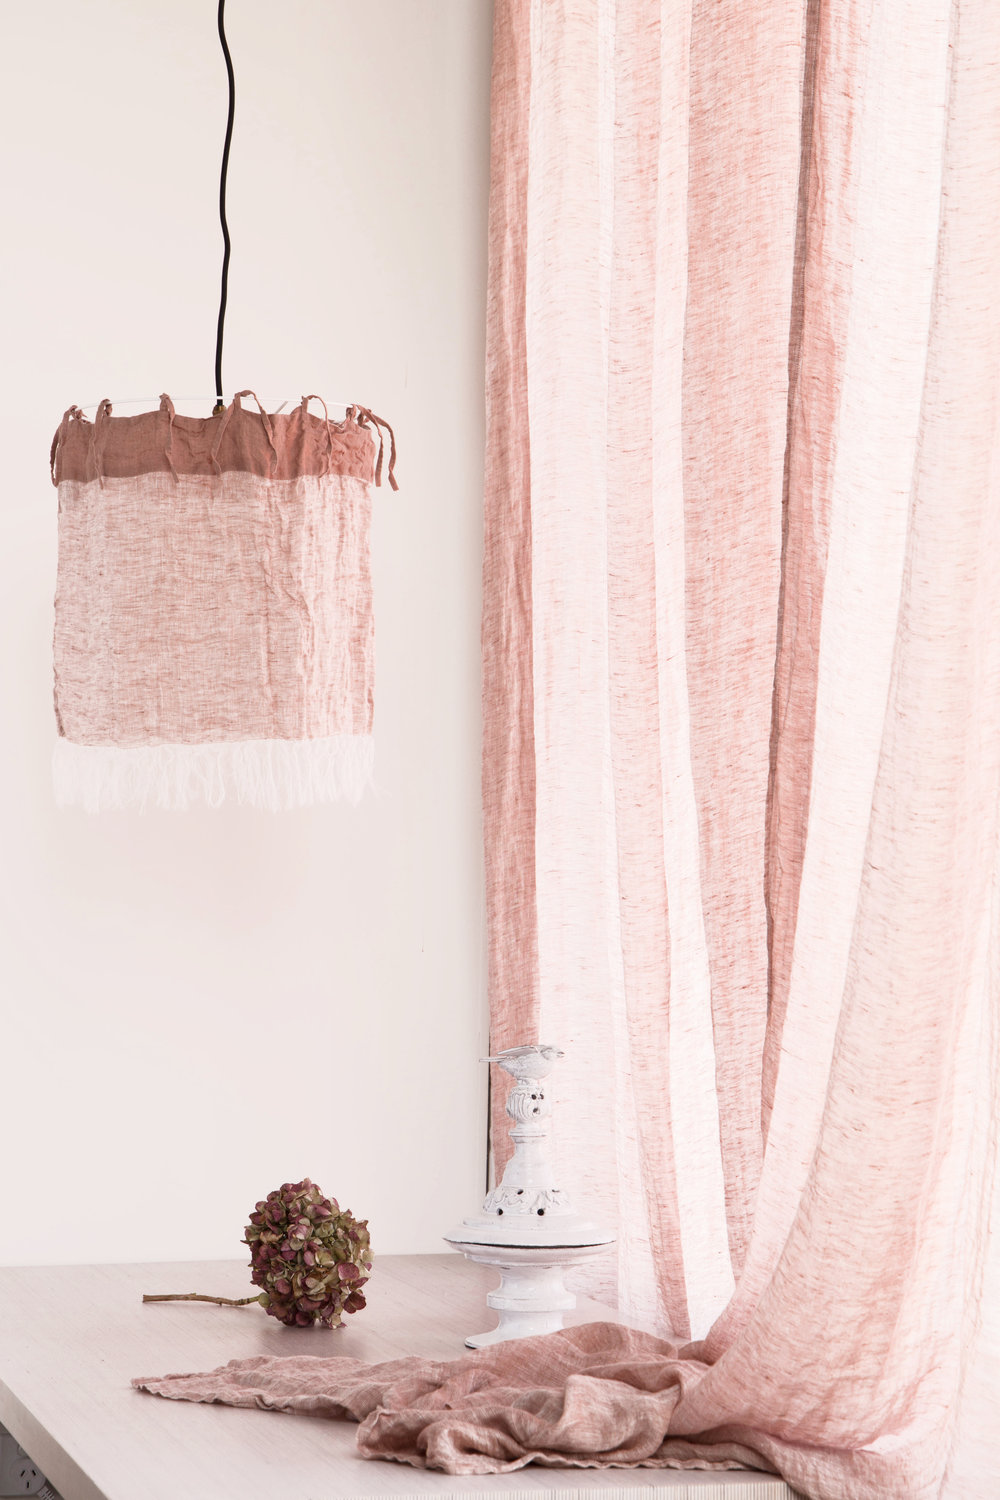 Linen lamp shades and curtains, Colour Rosa.